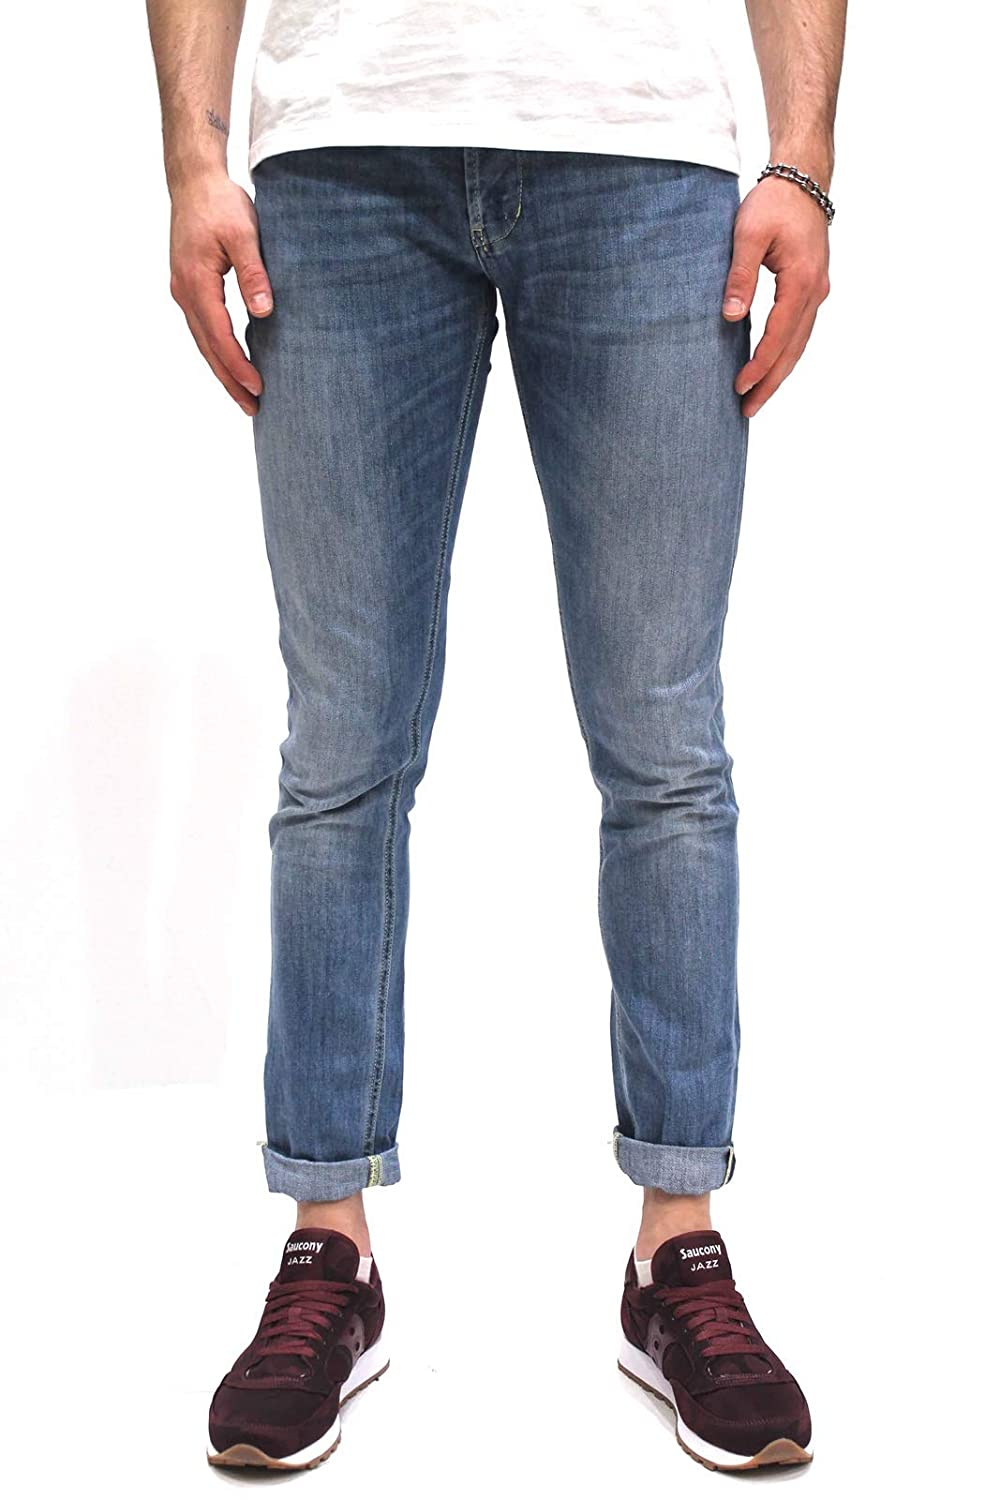 DONDUP Jeans Uomo UP232-DS0107 Denim Chiaro